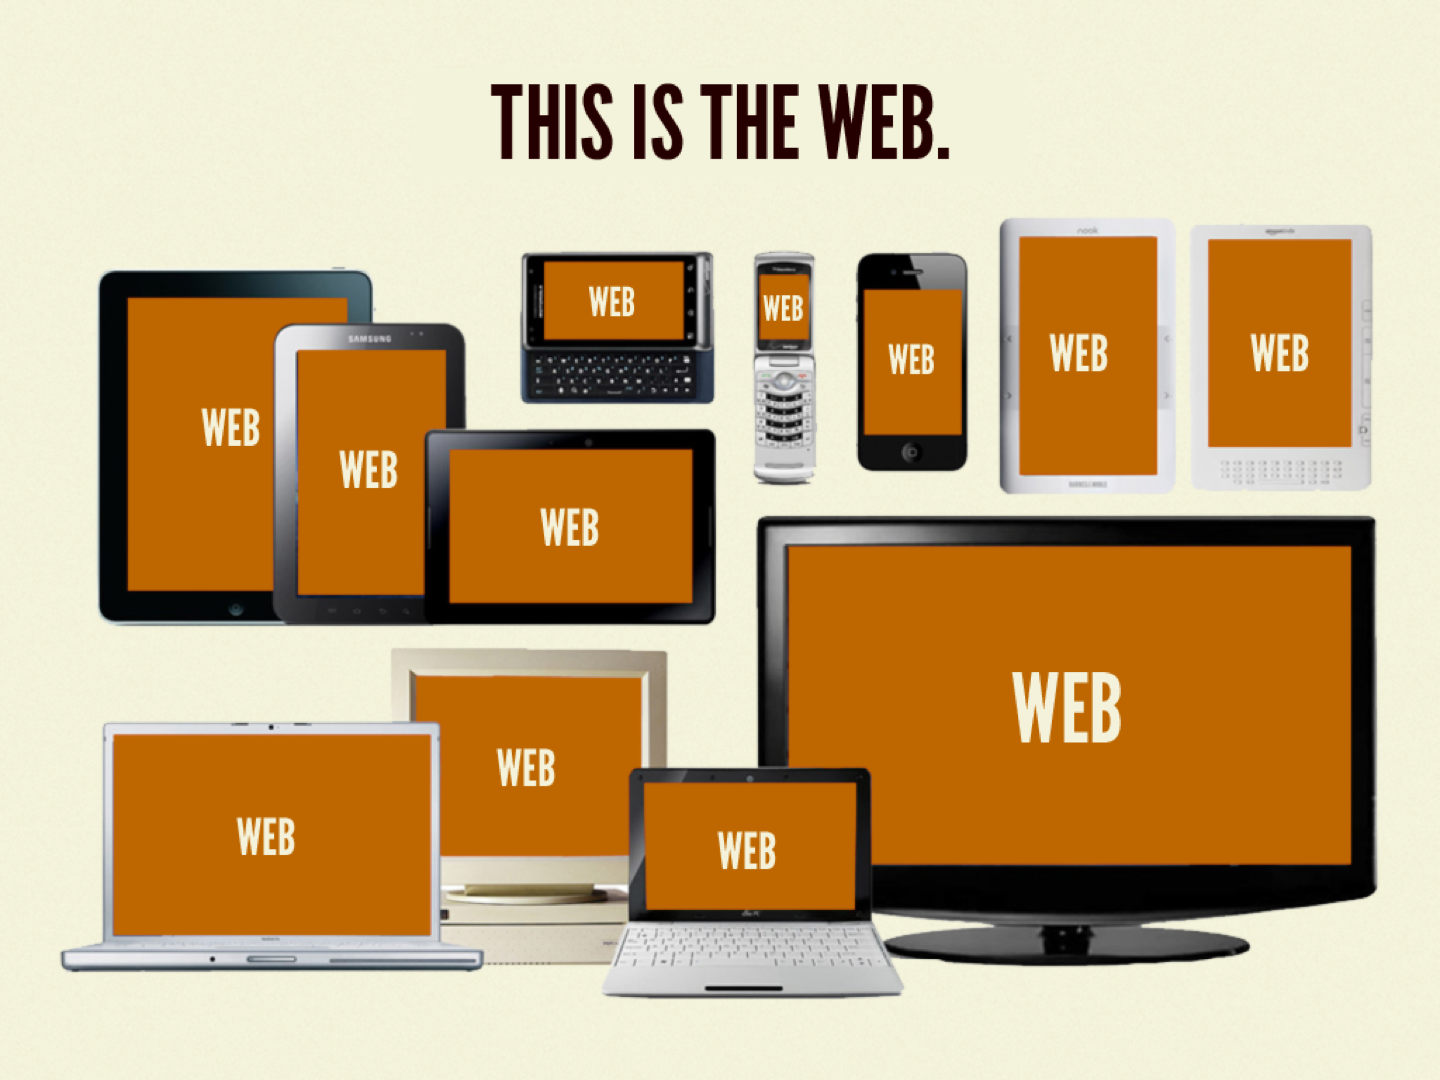 This is the web: a potpourri of devices, screen sizes, capabilities, form factors, network speeds, input types, and more.